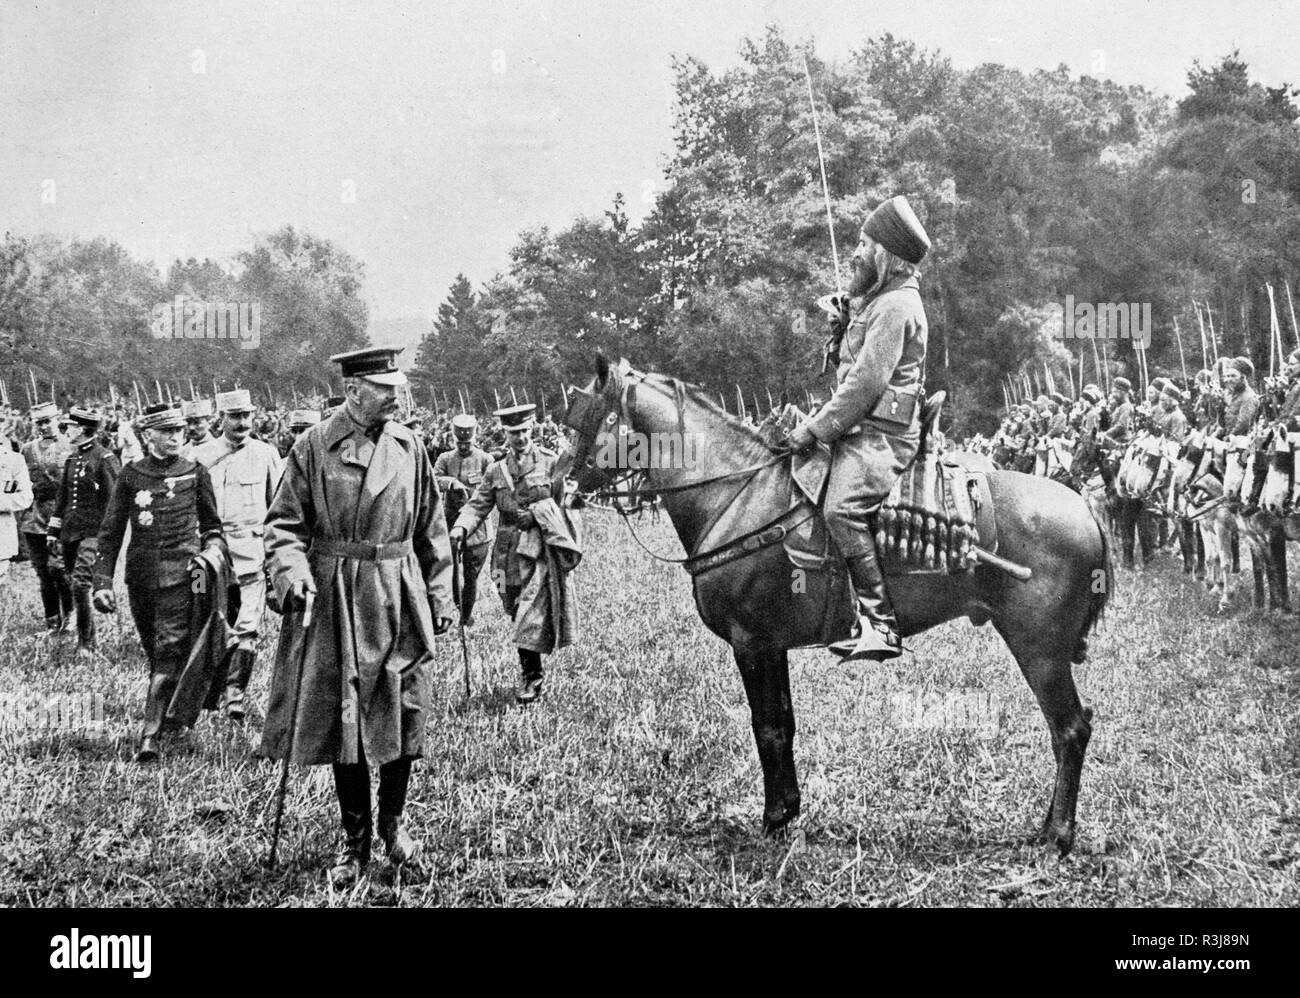 Field Marshal Lord Kitchener inspecting African troops, 1915 - Stock Image